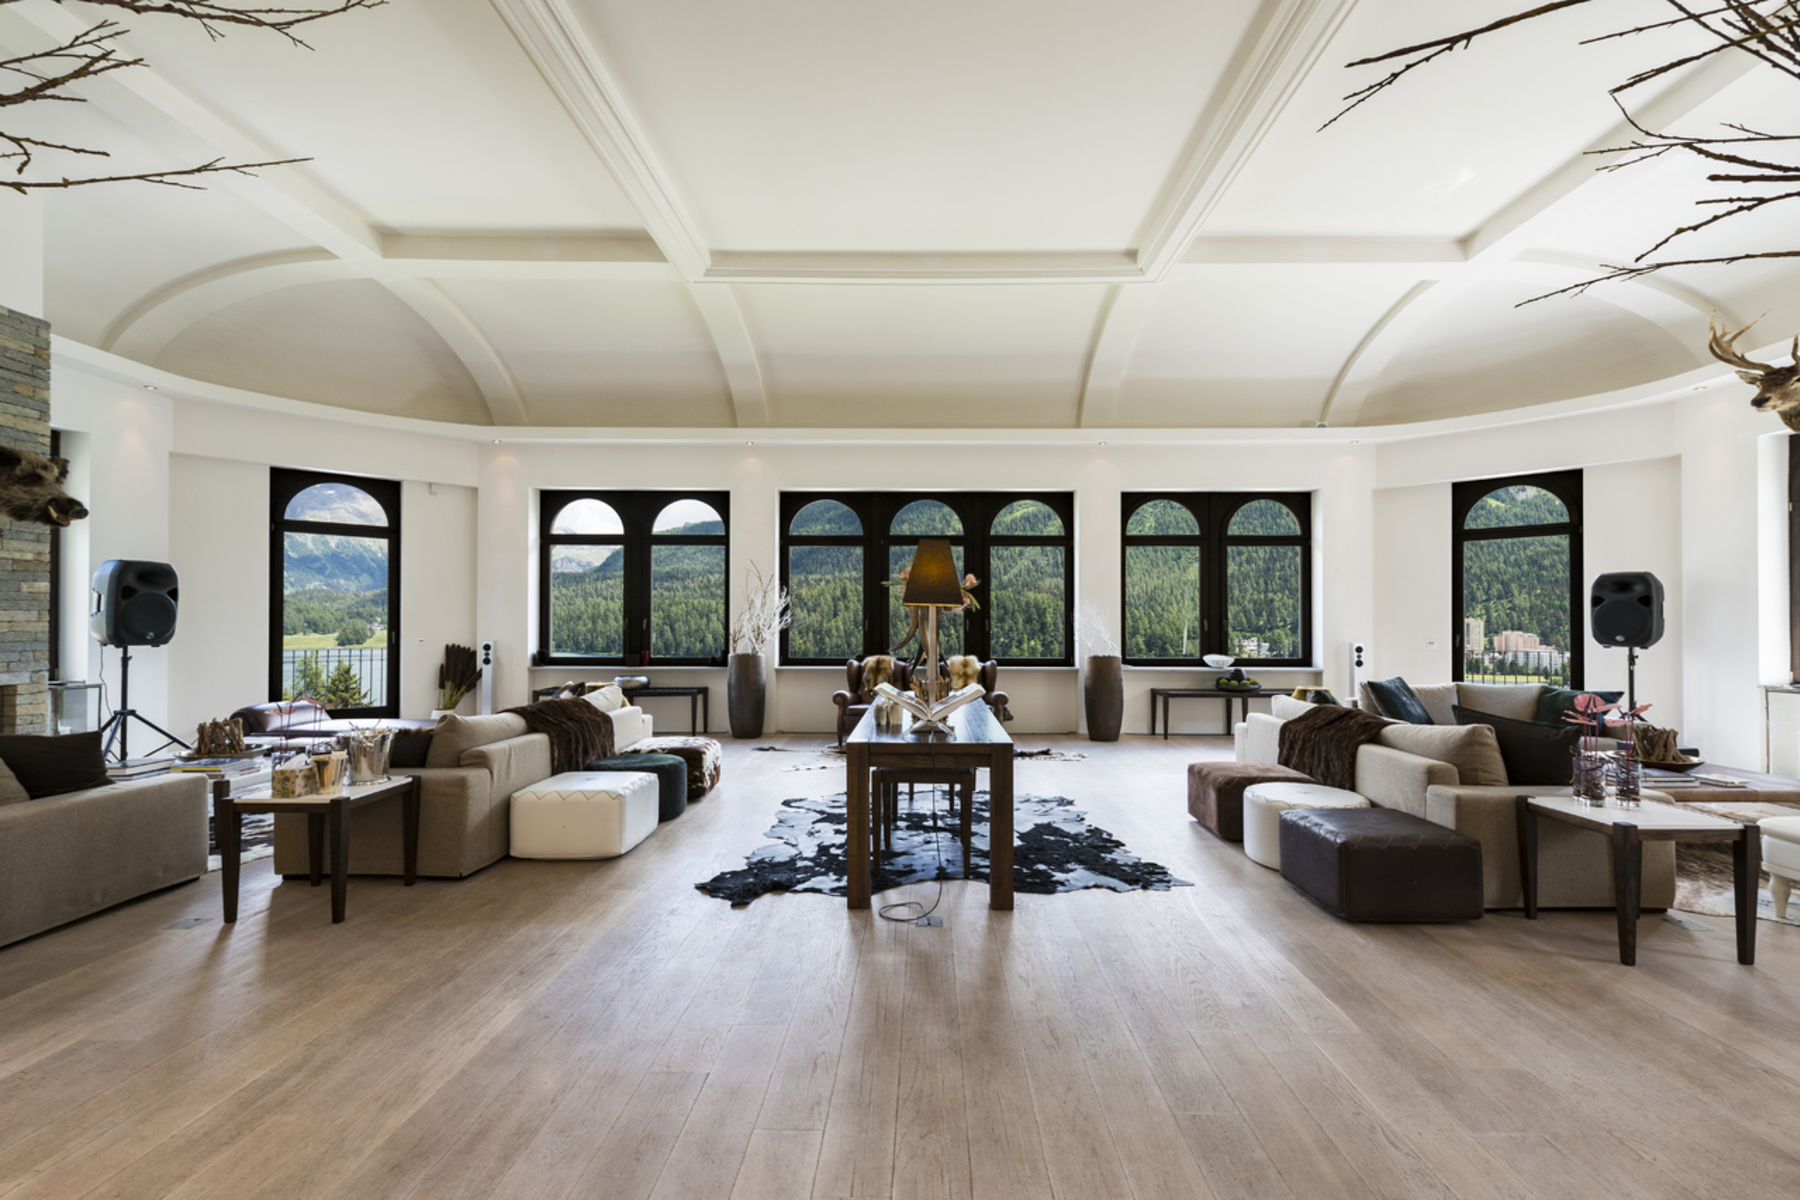 Apartment for Sale at Exclusive apartment with spectacular view St. Moritz, Grisons 7500 Switzerland